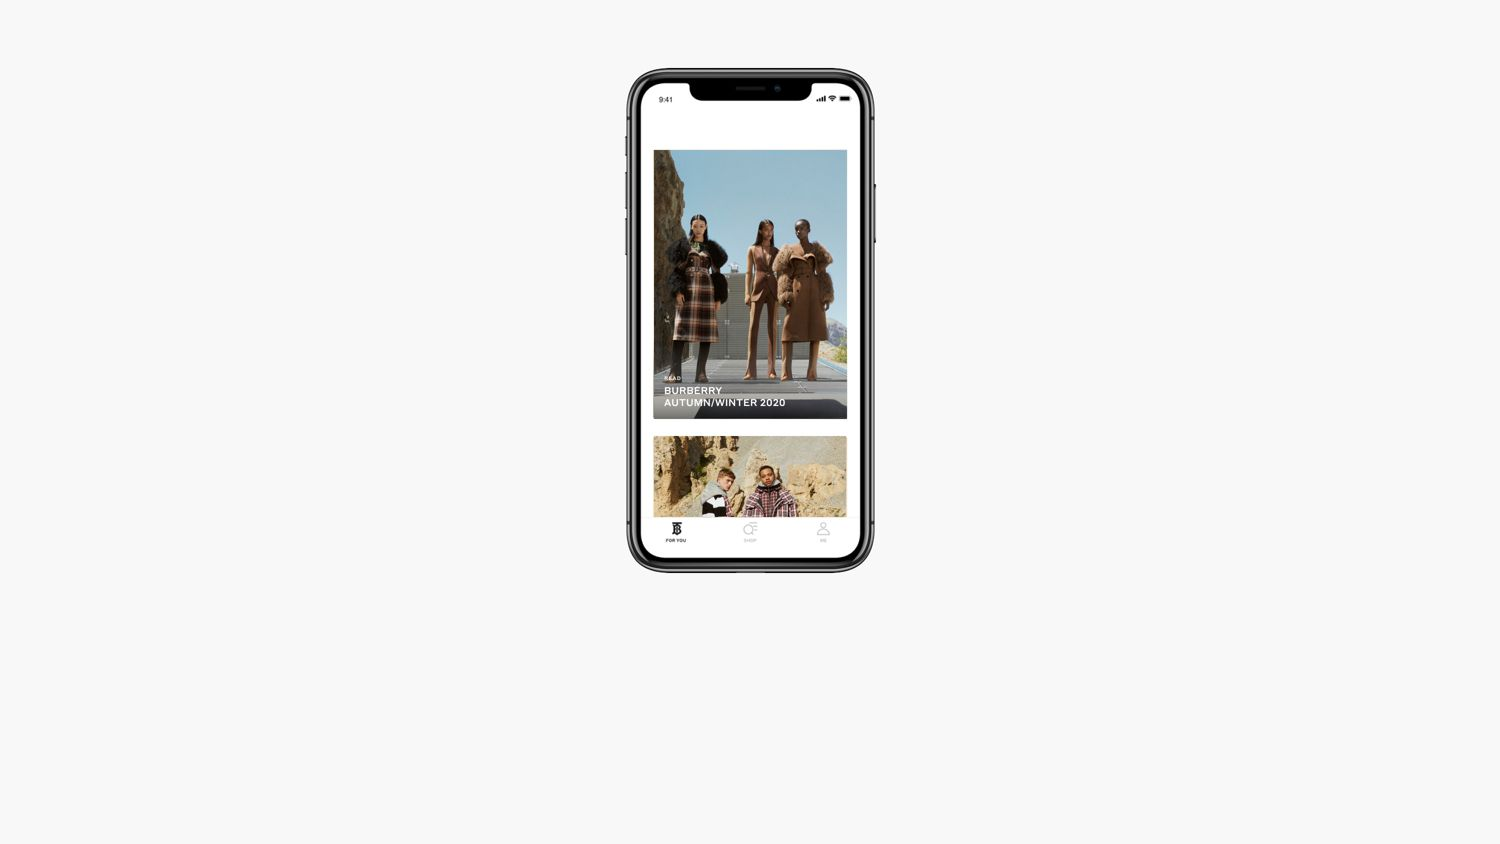 The Burberry App